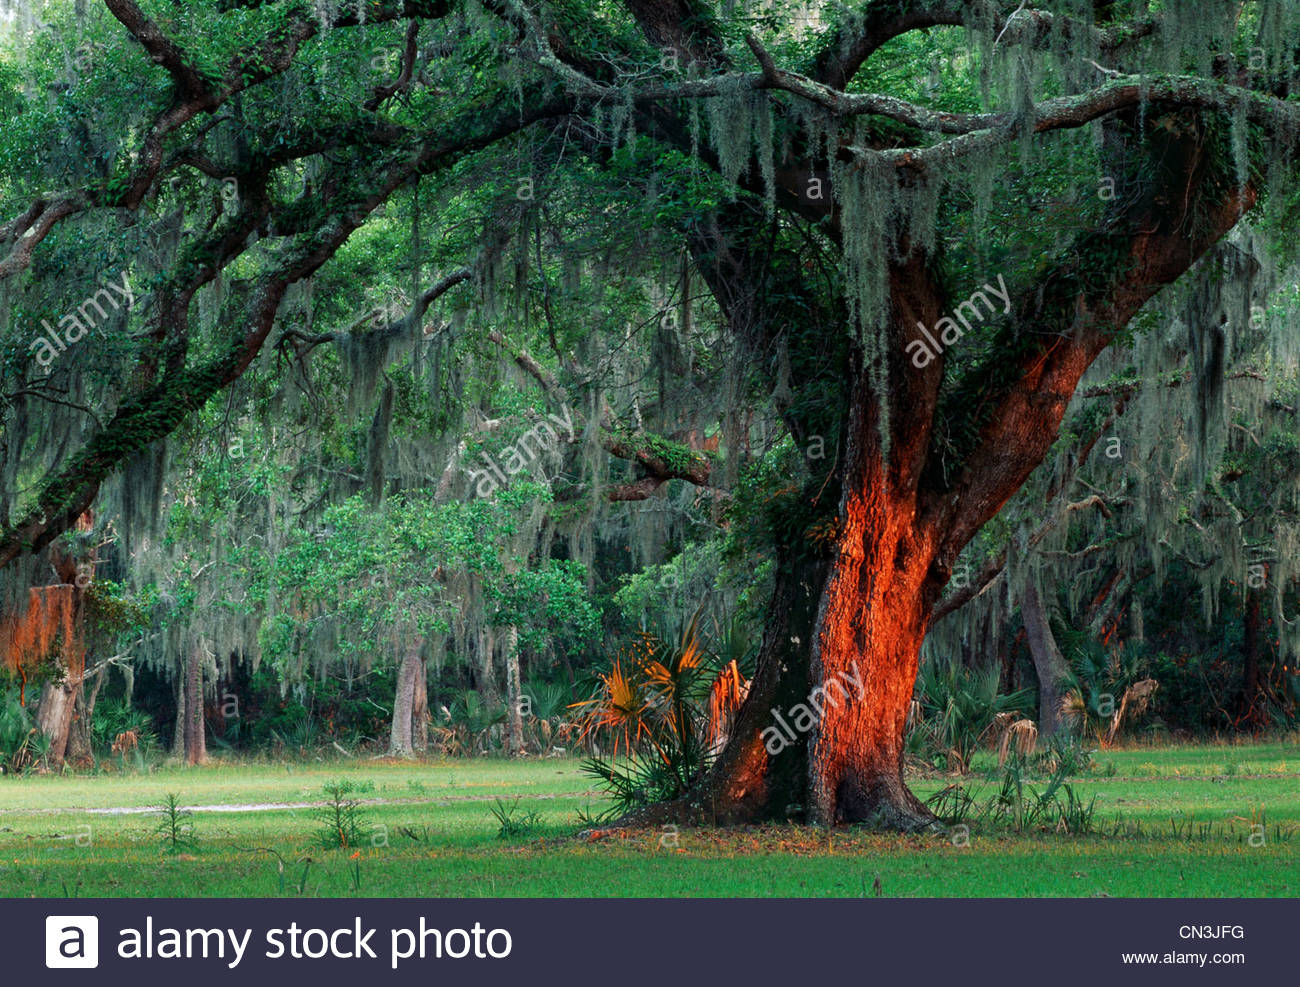 An oak tree stands grandly as moss hangs from its large branches, Georgia, USA. - Stock Image